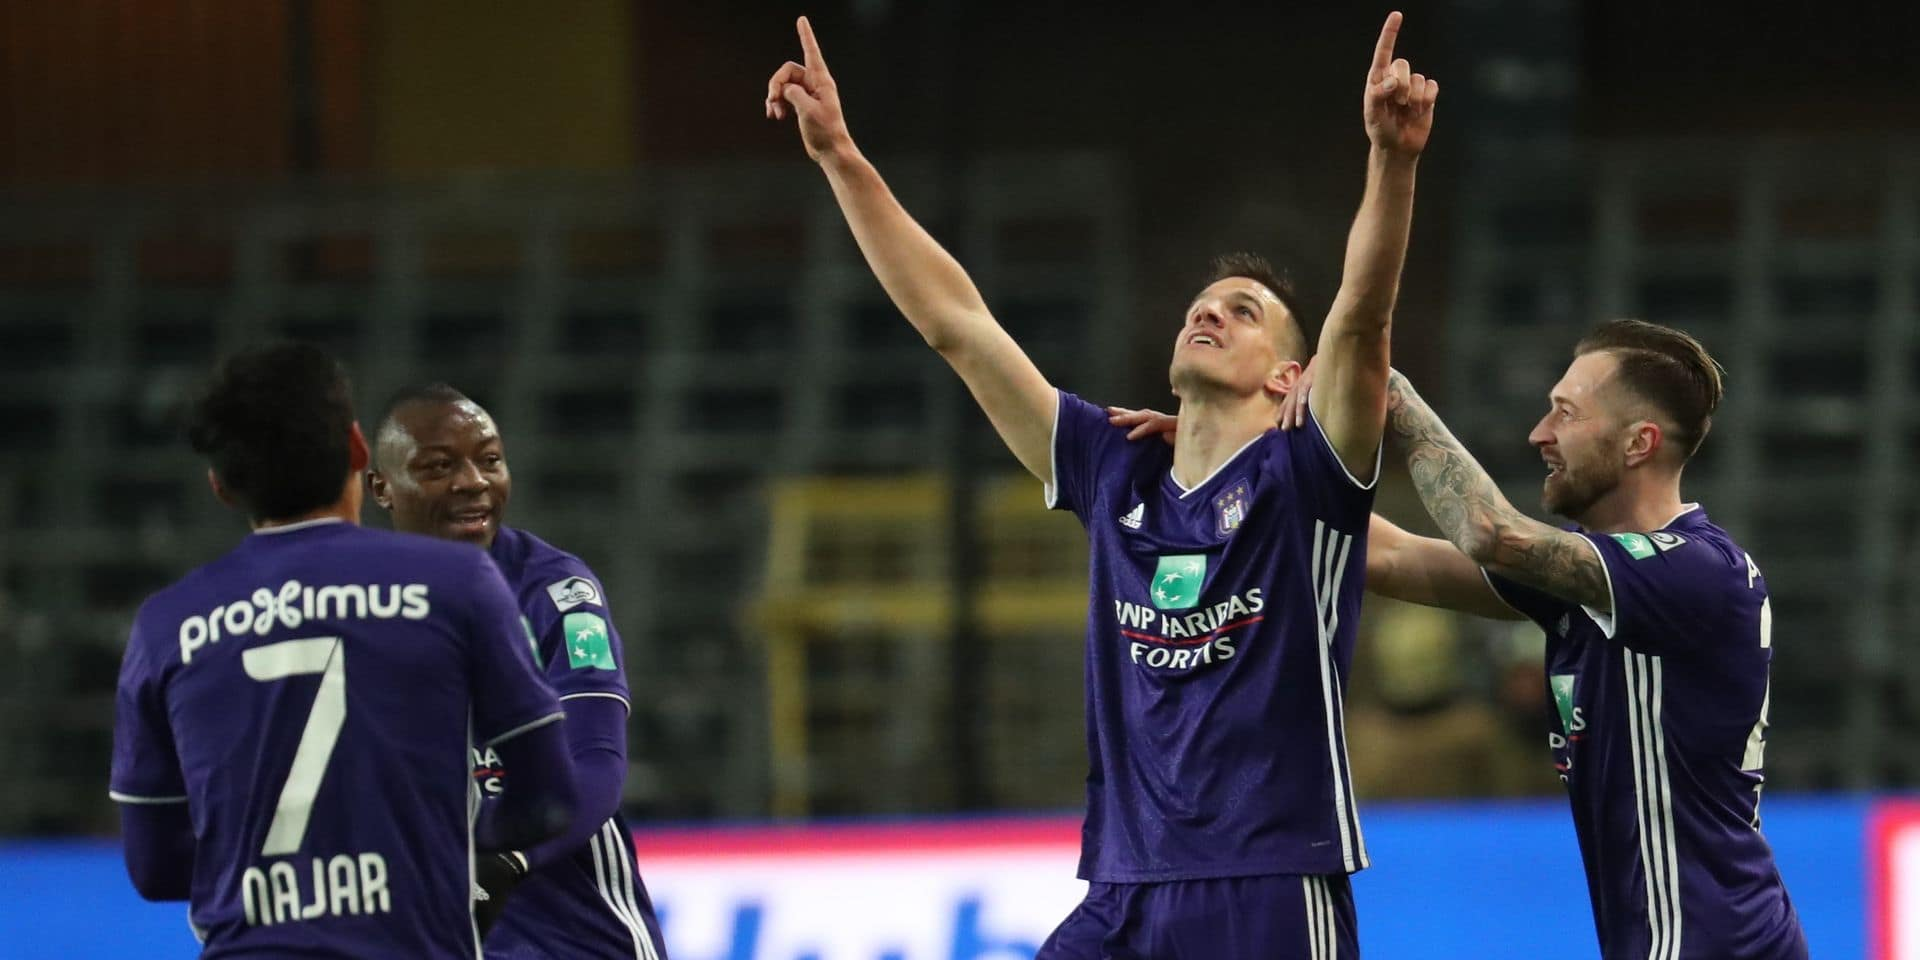 Anderlecht's Ivan Santini and Anderlecht's Peter Zulj celebrate after scoring during the soccer match between RSC Anderlecht and KAS Eupen, Sunday 27 January 2019 in Brussels, on the 23rd day of the 'Jupiler Pro League' Belgian soccer championship season 2018-2019. BELGA PHOTO VIRGINIE LEFOUR